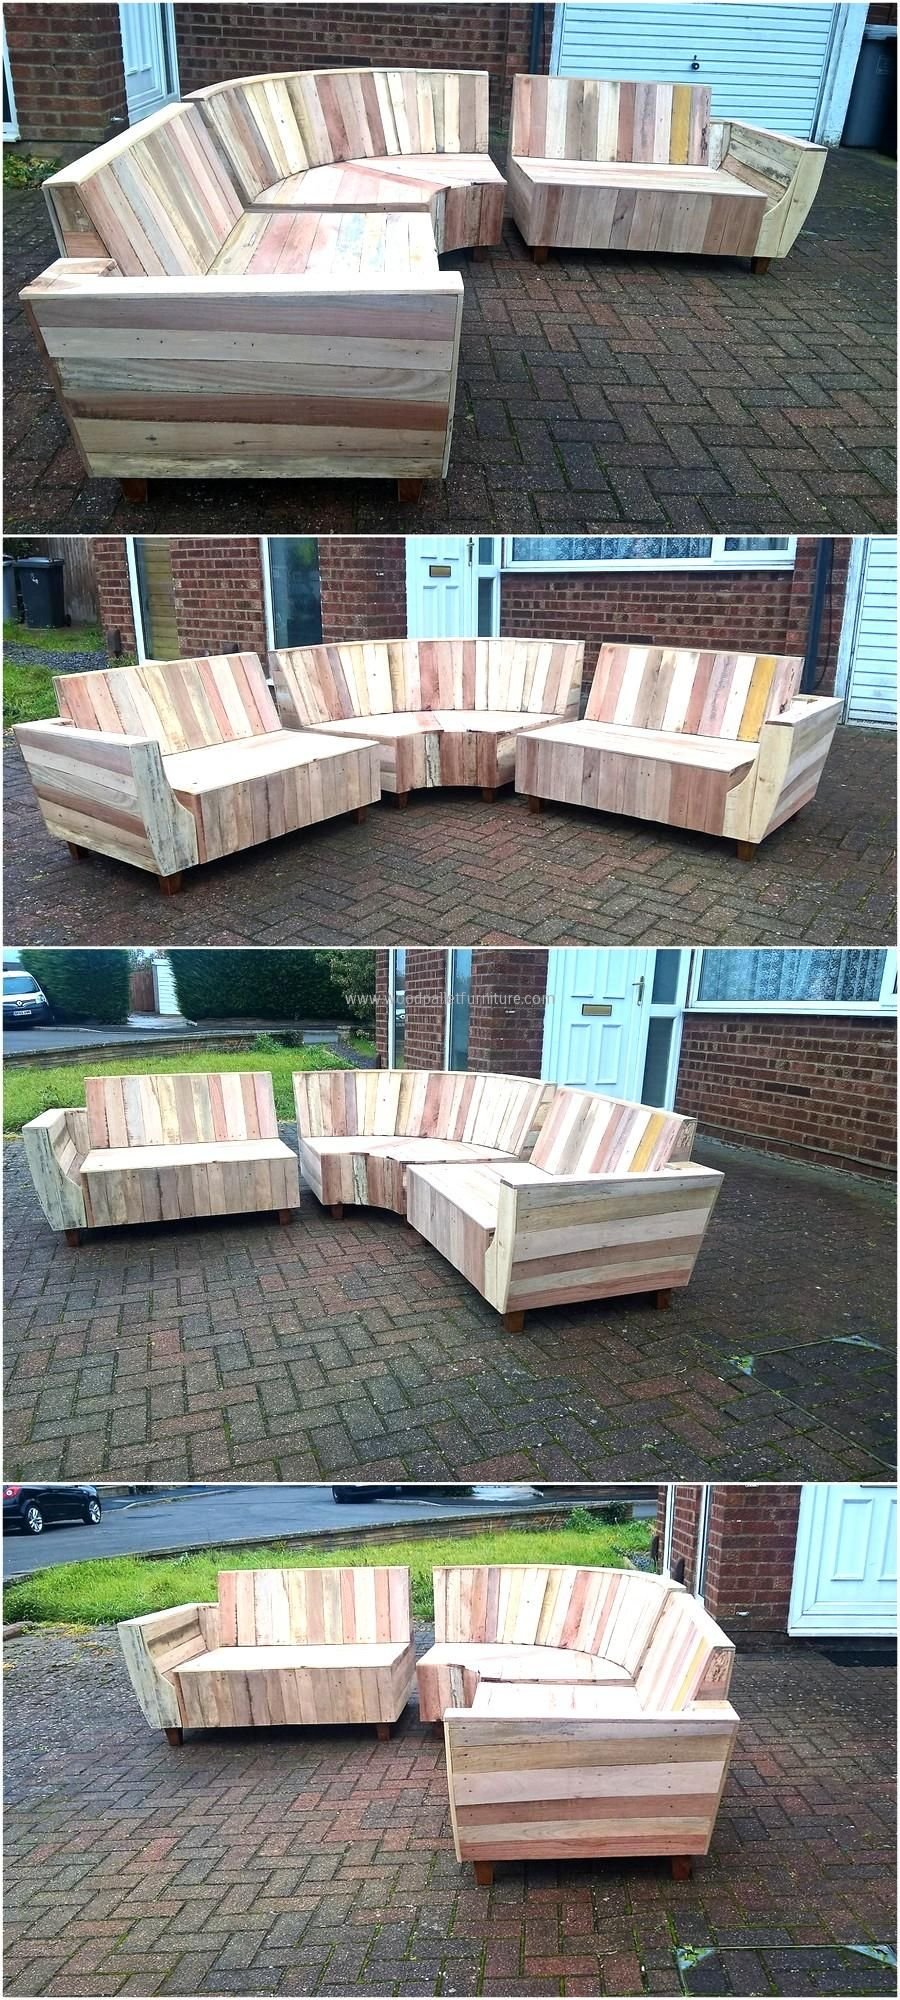 Outdoor Couch Set Made with Pallets Muebles hechos con